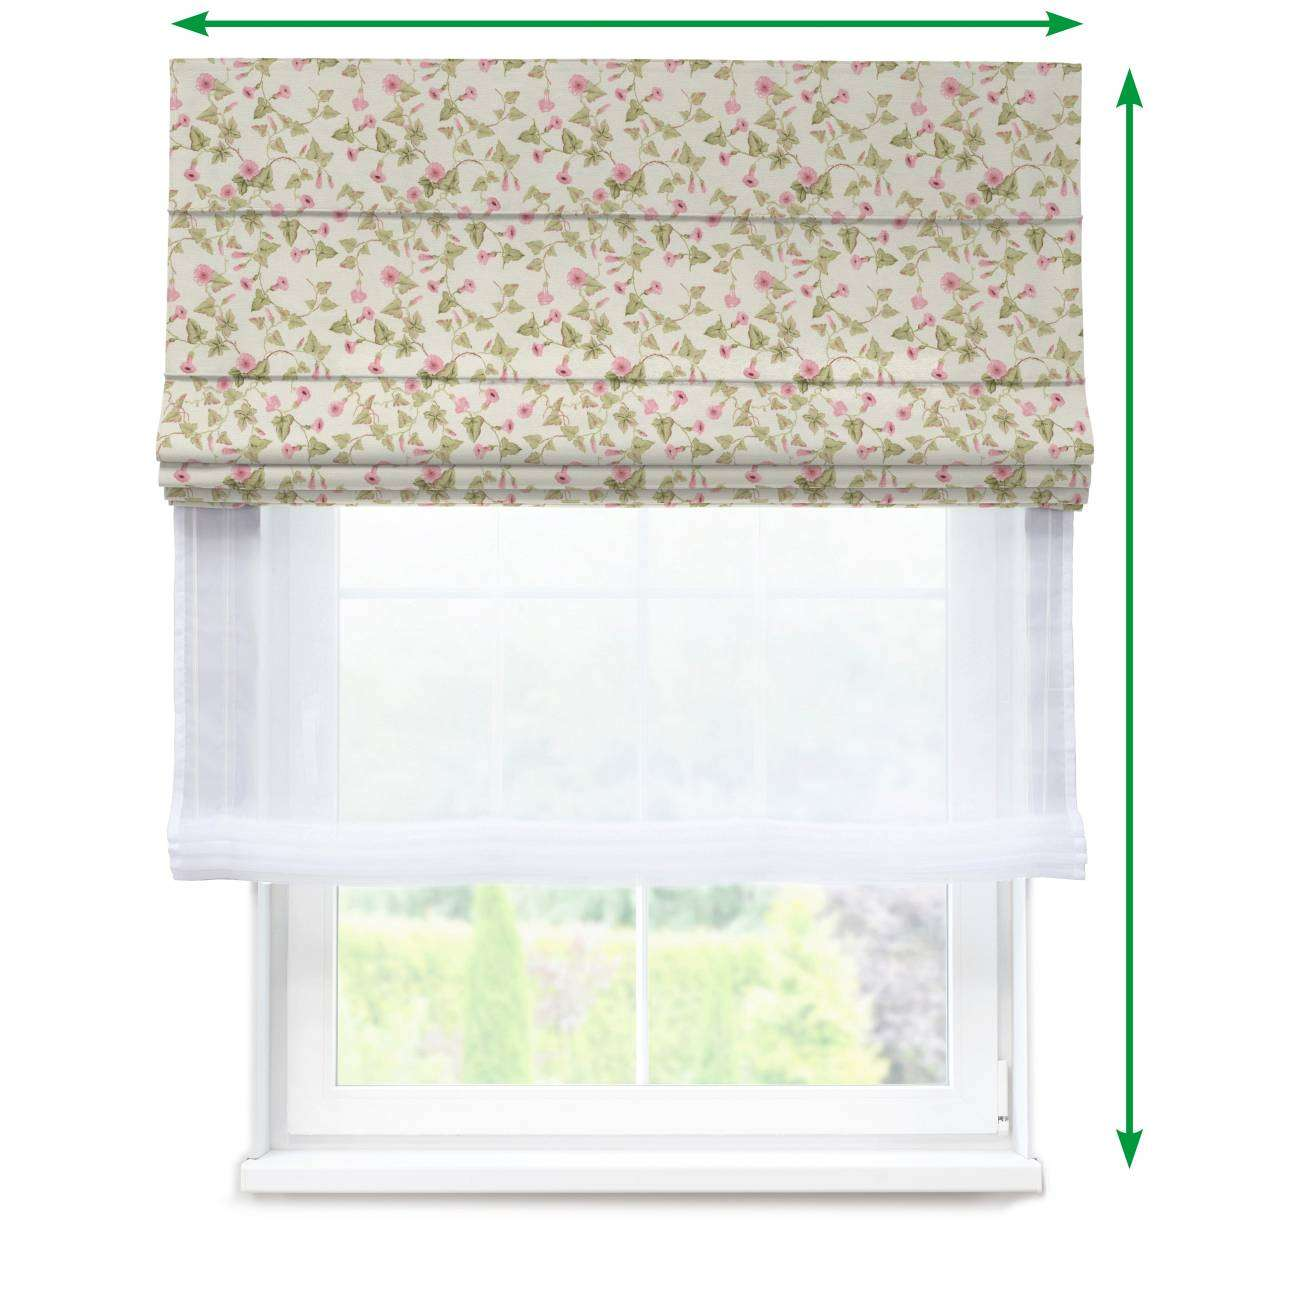 Voile and fabric roman blind (DUO II) in collection Mirella, fabric: 140-41